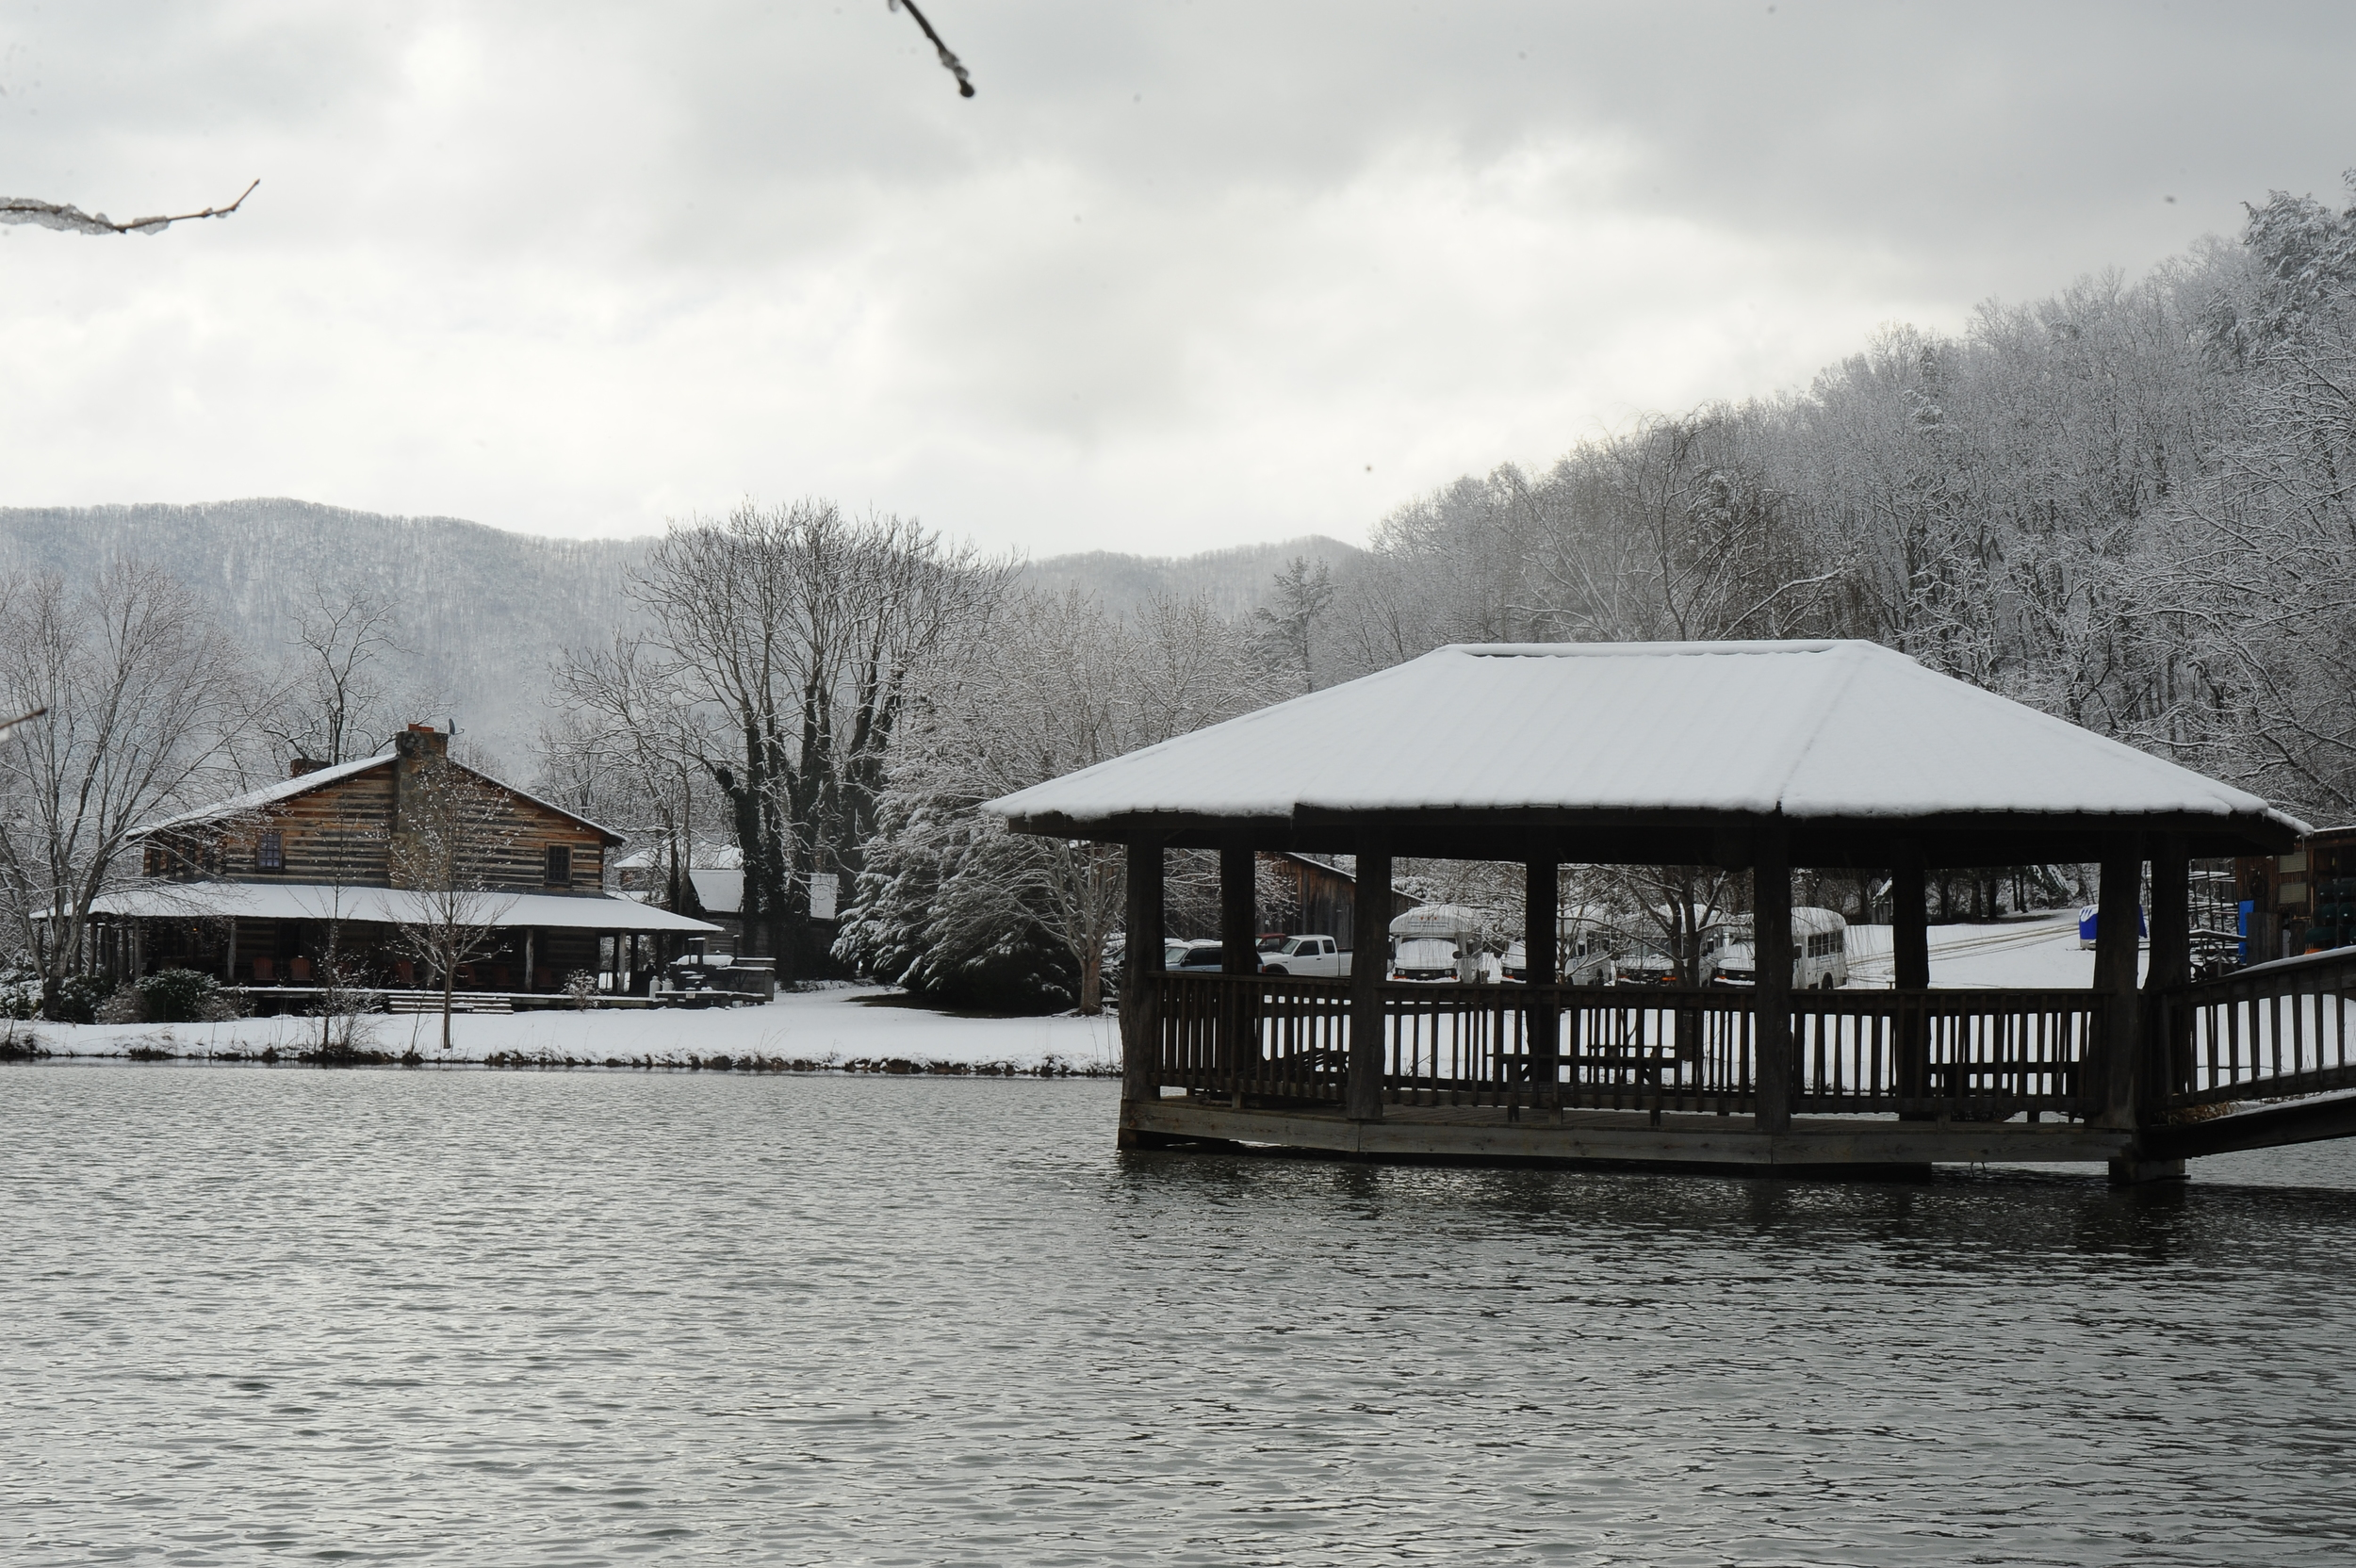 Take a walk around our scenic pond for this spectacular view of the gazebo and Main Lodge